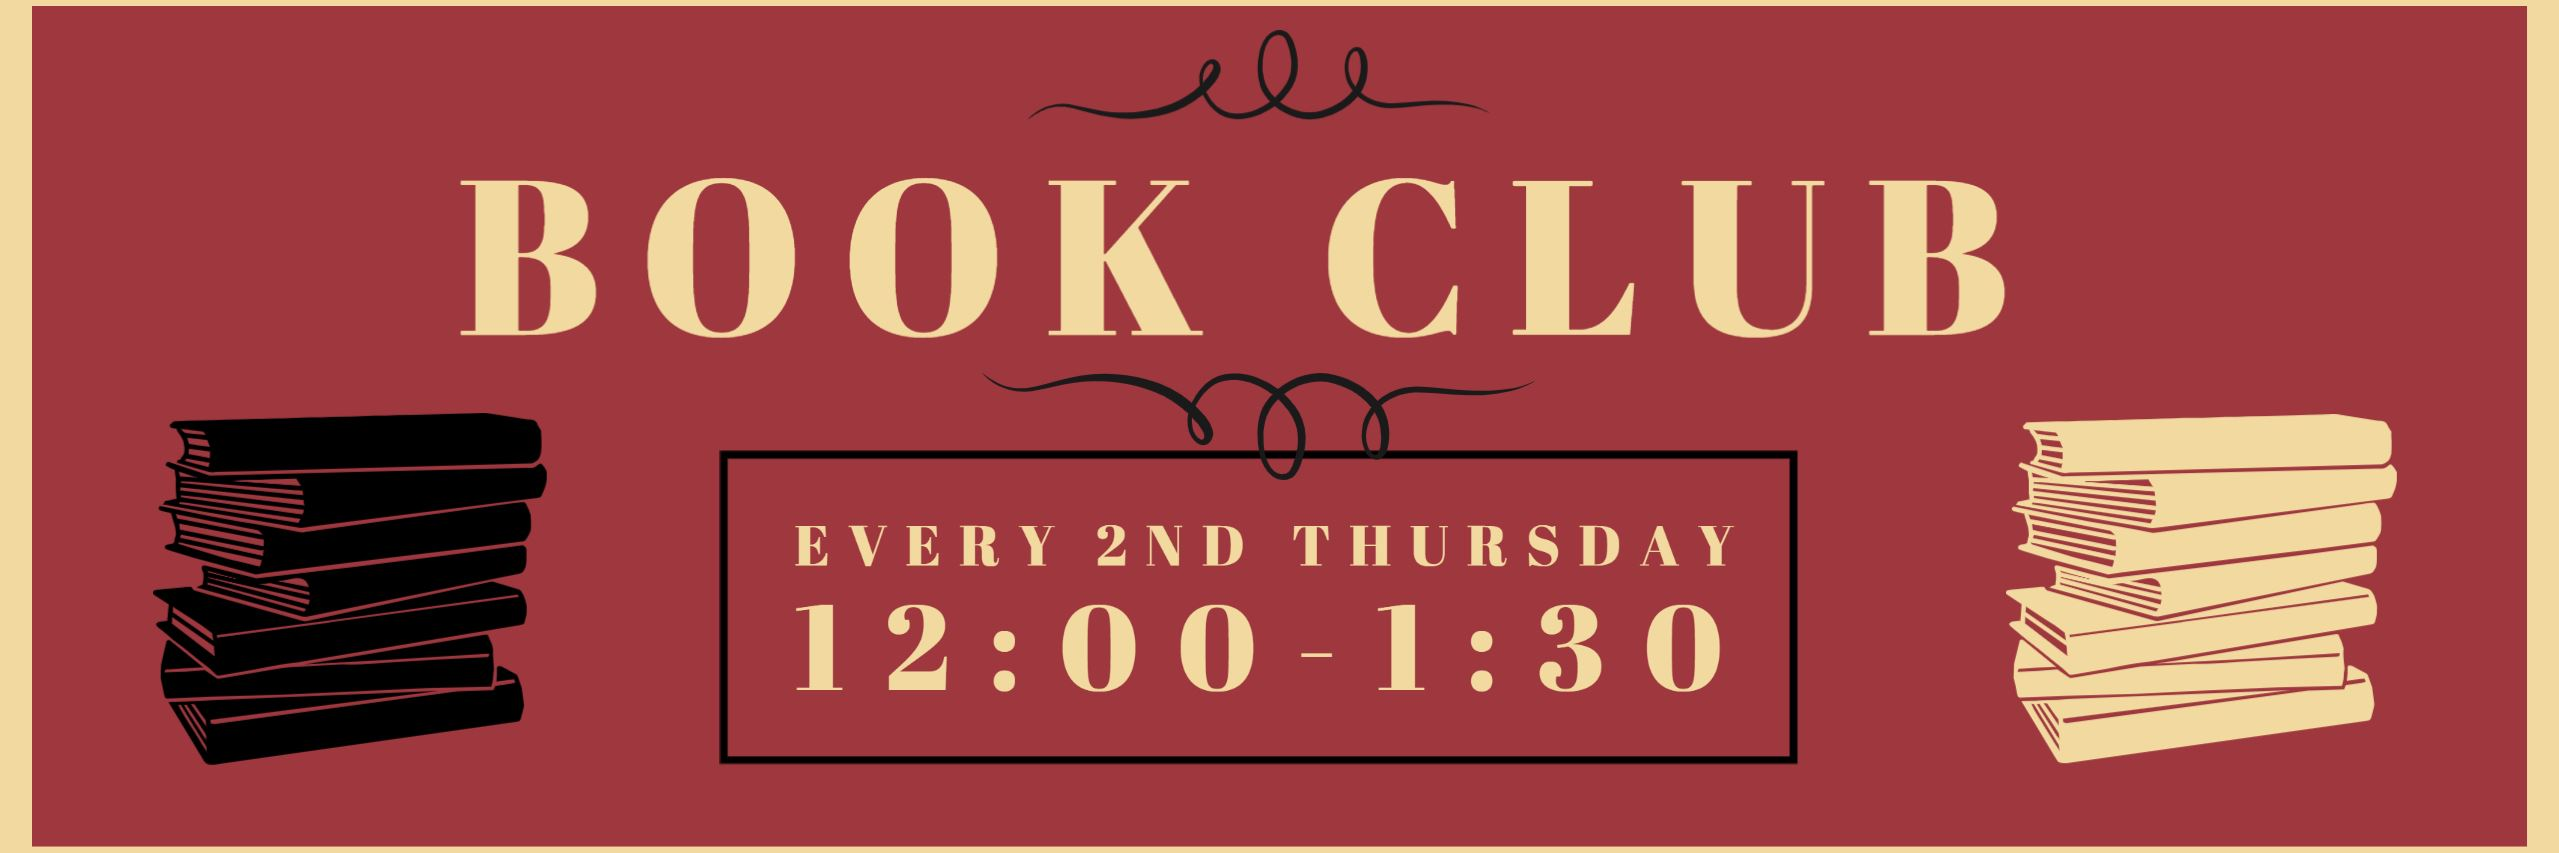 Adult Book Club Banner